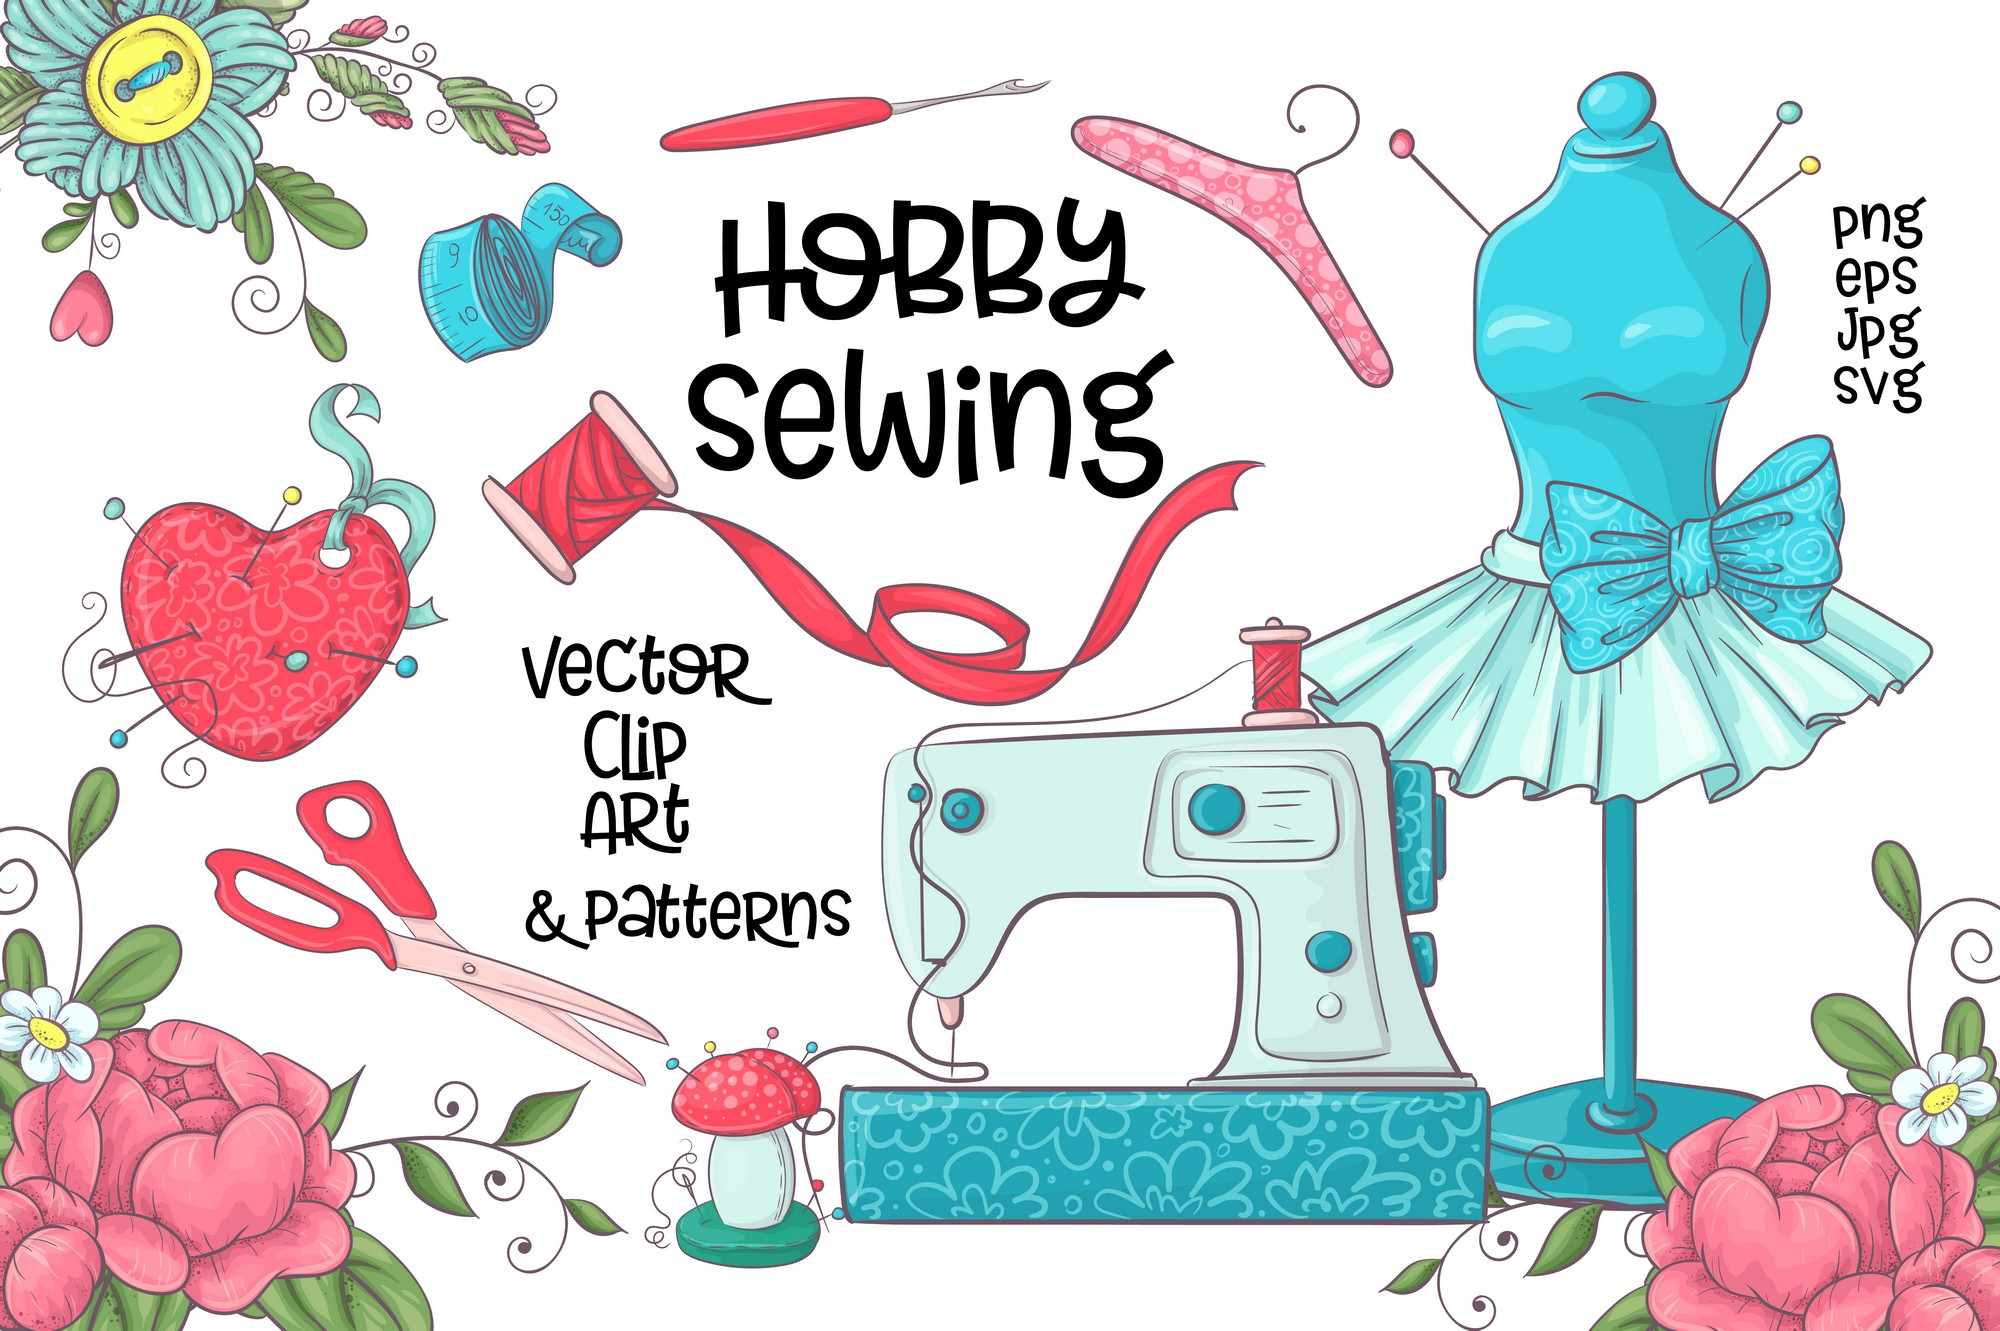 Hobby Sewing vector clip art.